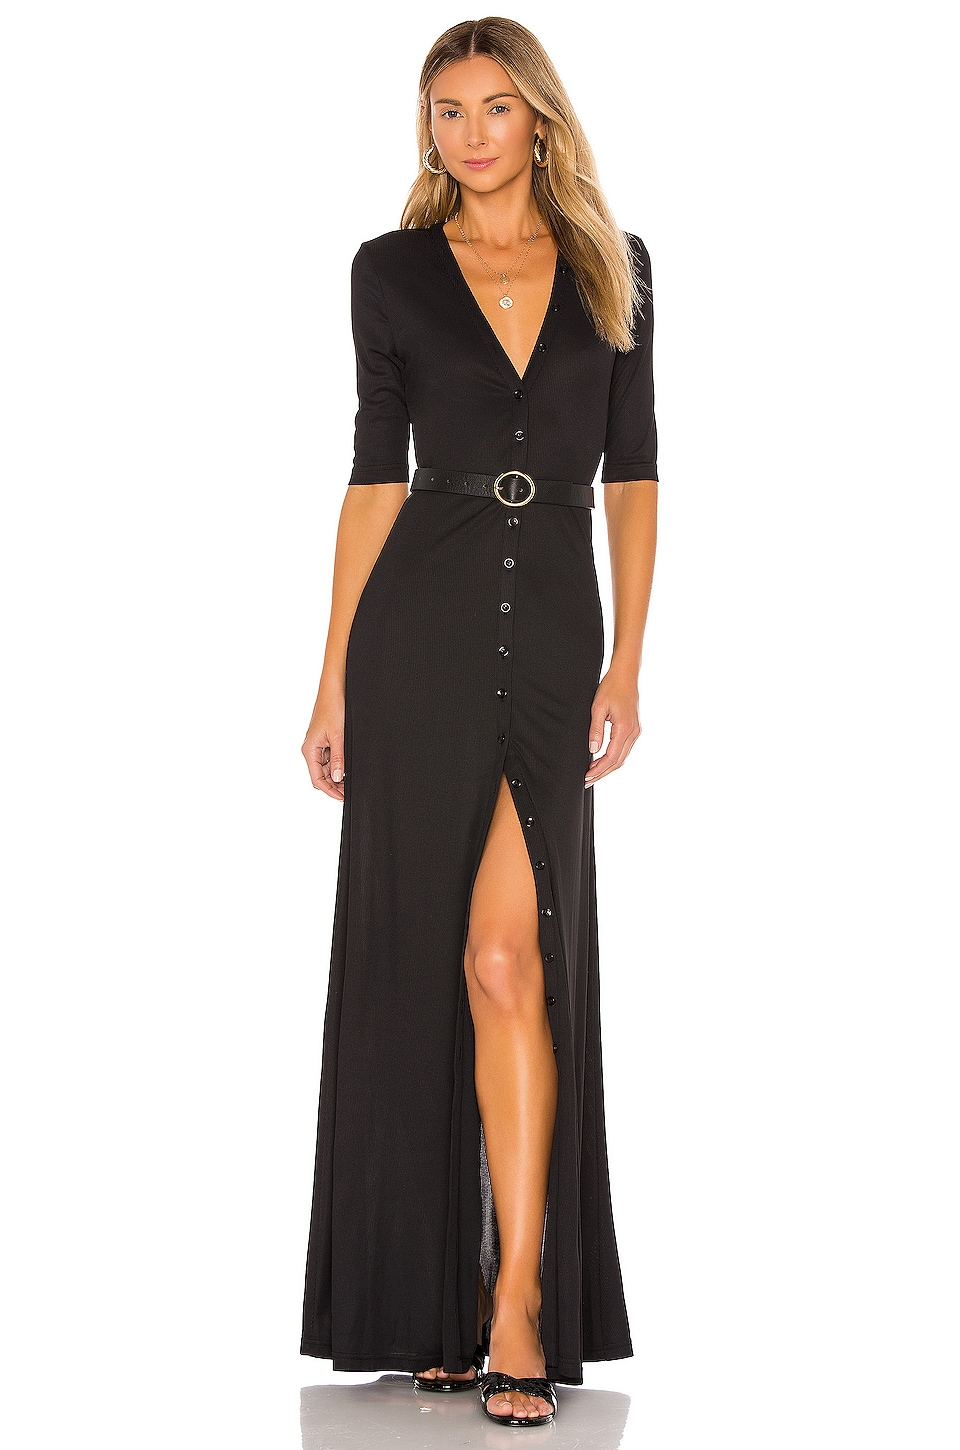 The Esperanza Maxi Dress             L'Academie                                                                                                       CA$ 226.98 18